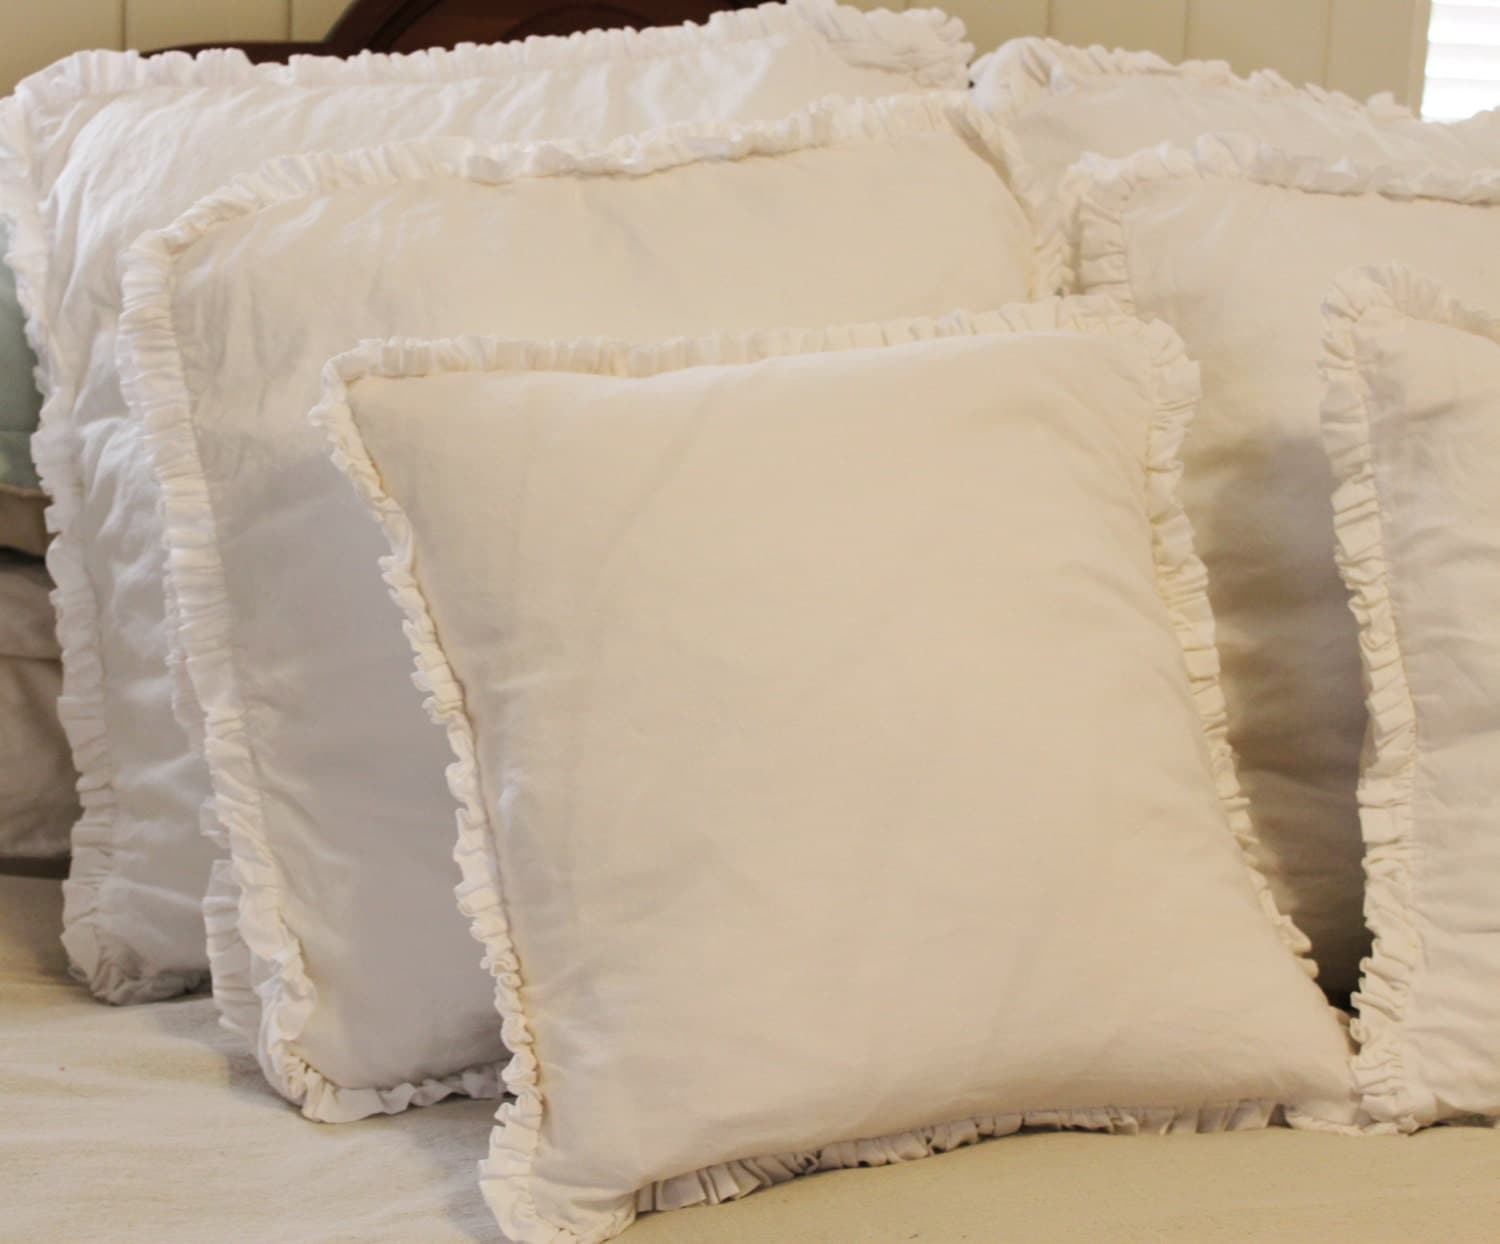 Throw Pillows With Ruffle Edge : Cotton Ruffle Edge Pillow cover 18 X 18 washed vintage white